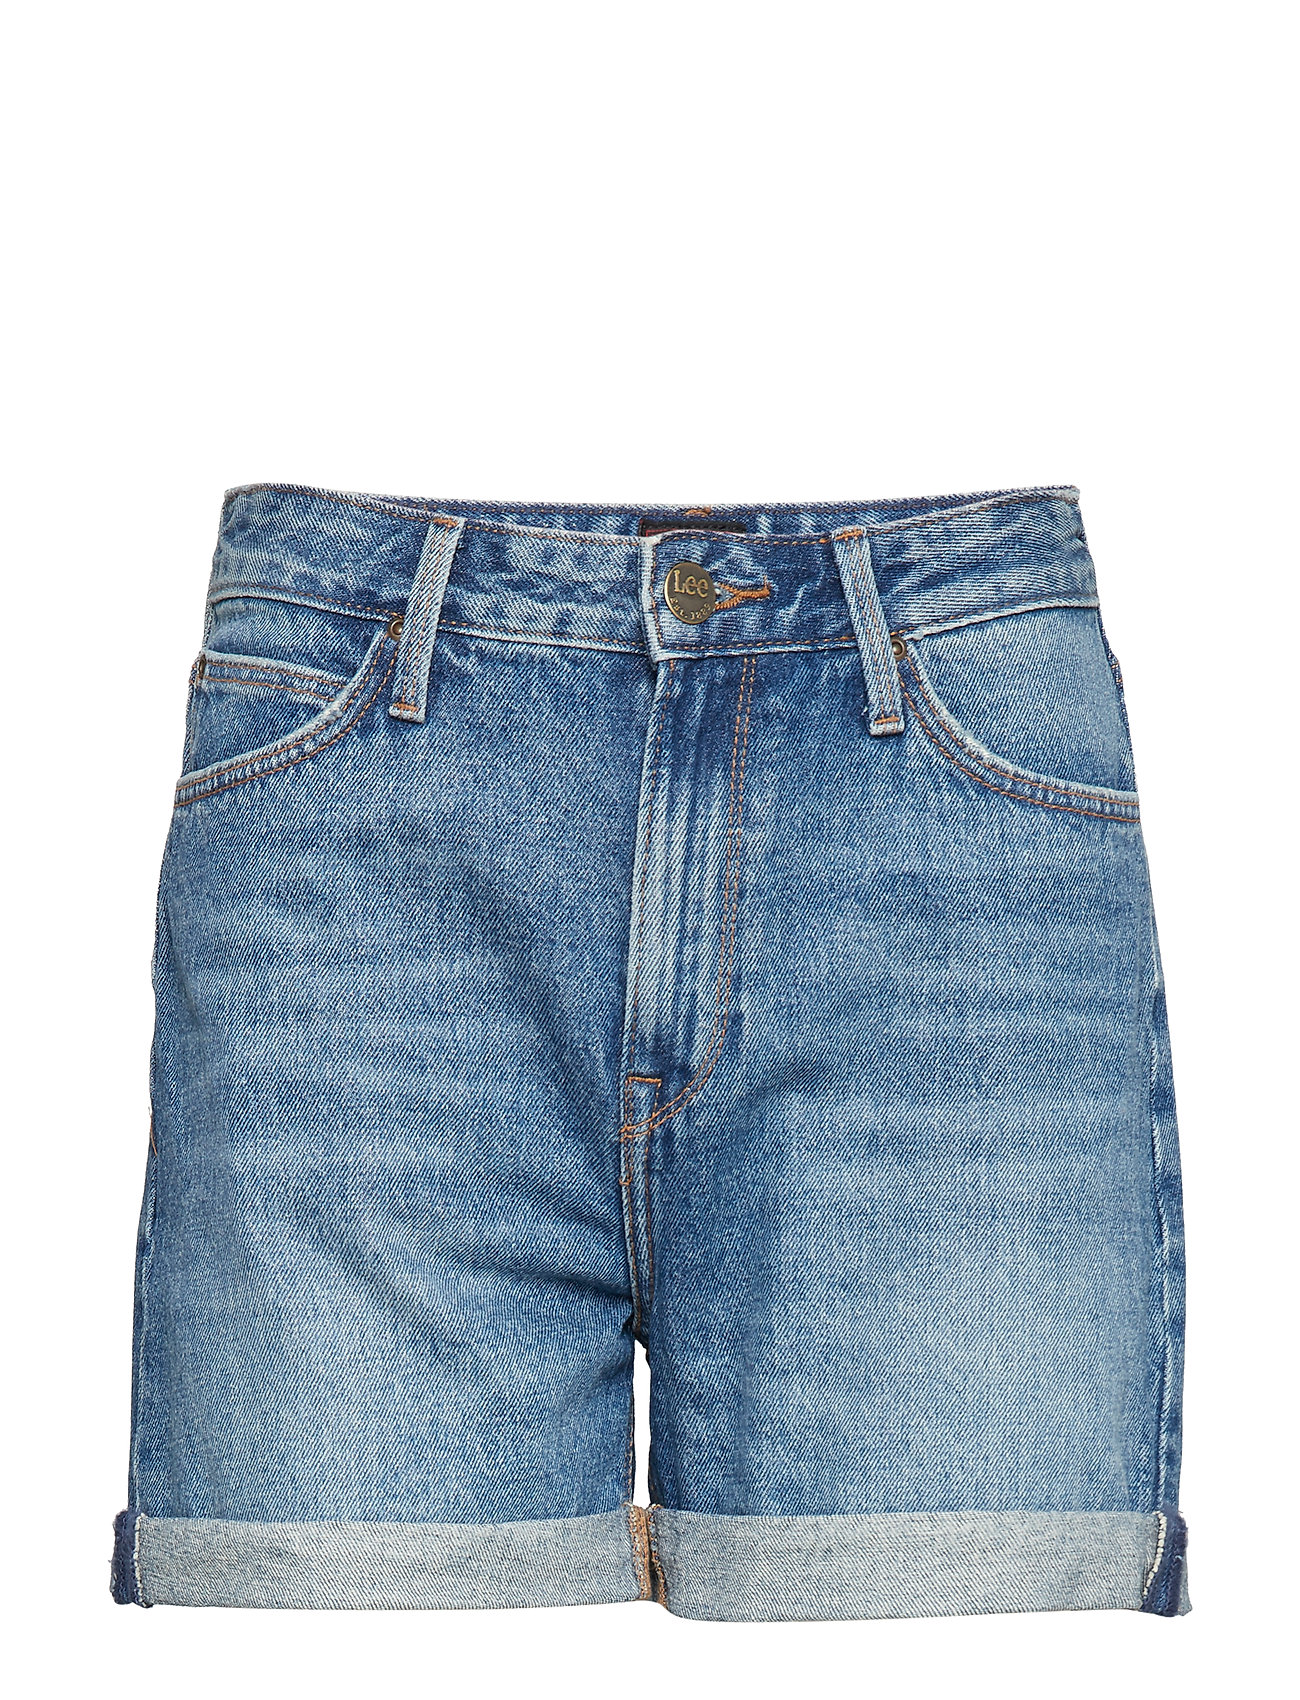 Lee Jeans MOM SHORT - GET BLUE